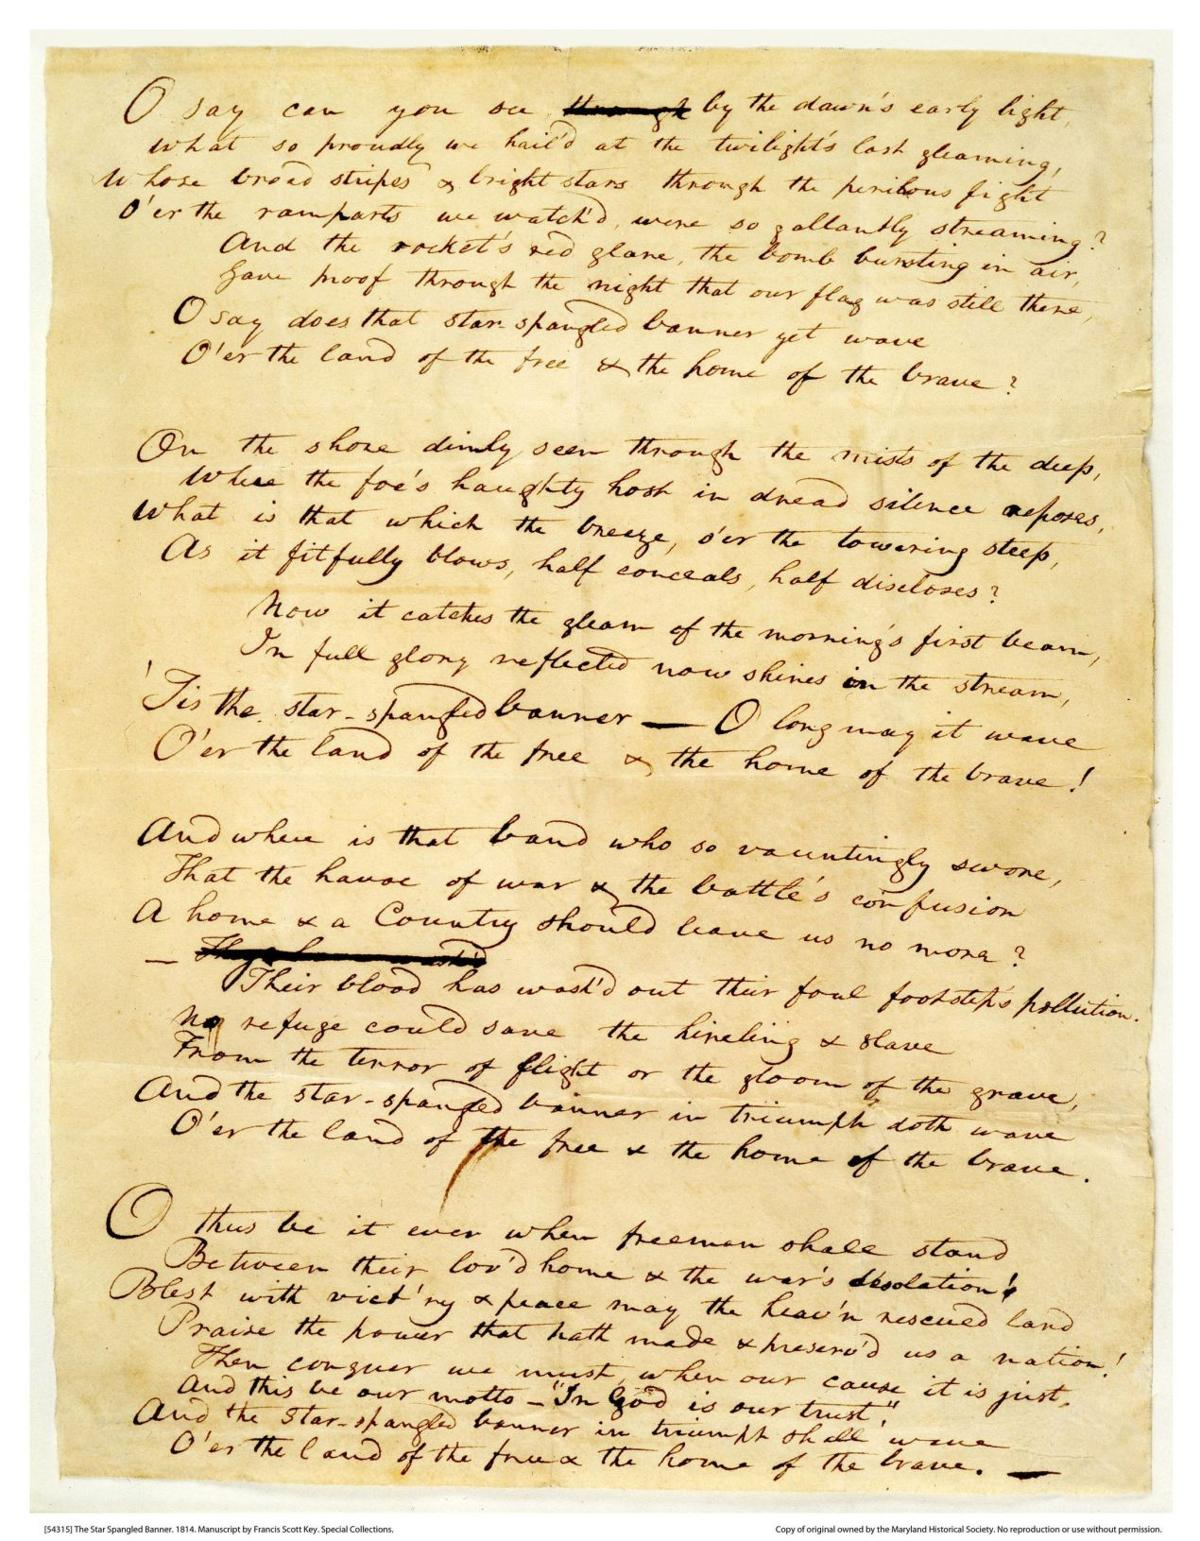 Star-Spangled Banner manuscript and flag that inspired it to be displayed side-by-side at Smithsonian